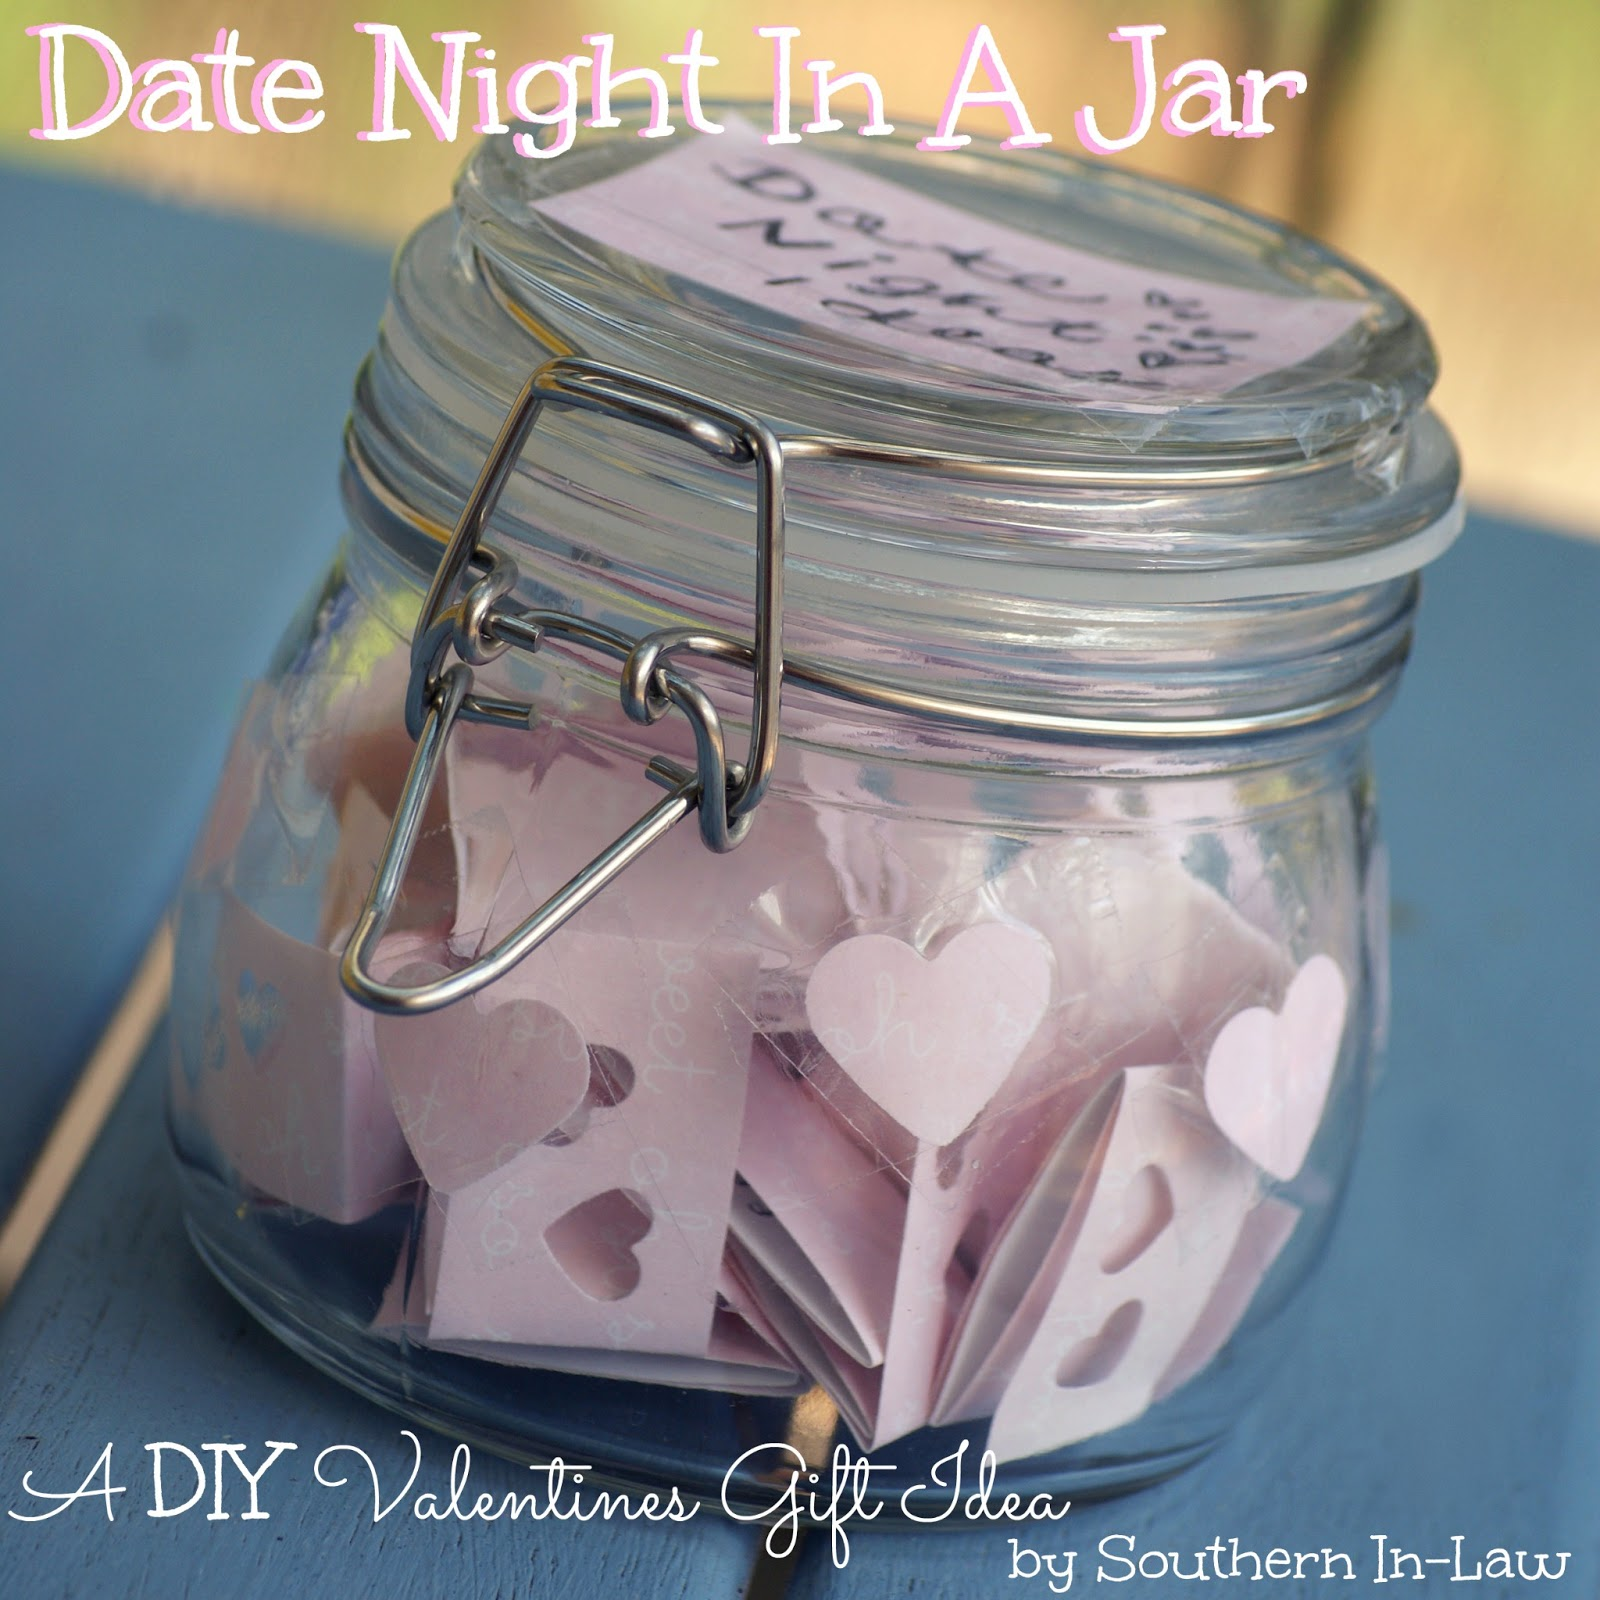 Southern in law valentines diy gifts date night jar diy valentines gift date night in a jar solutioingenieria Choice Image